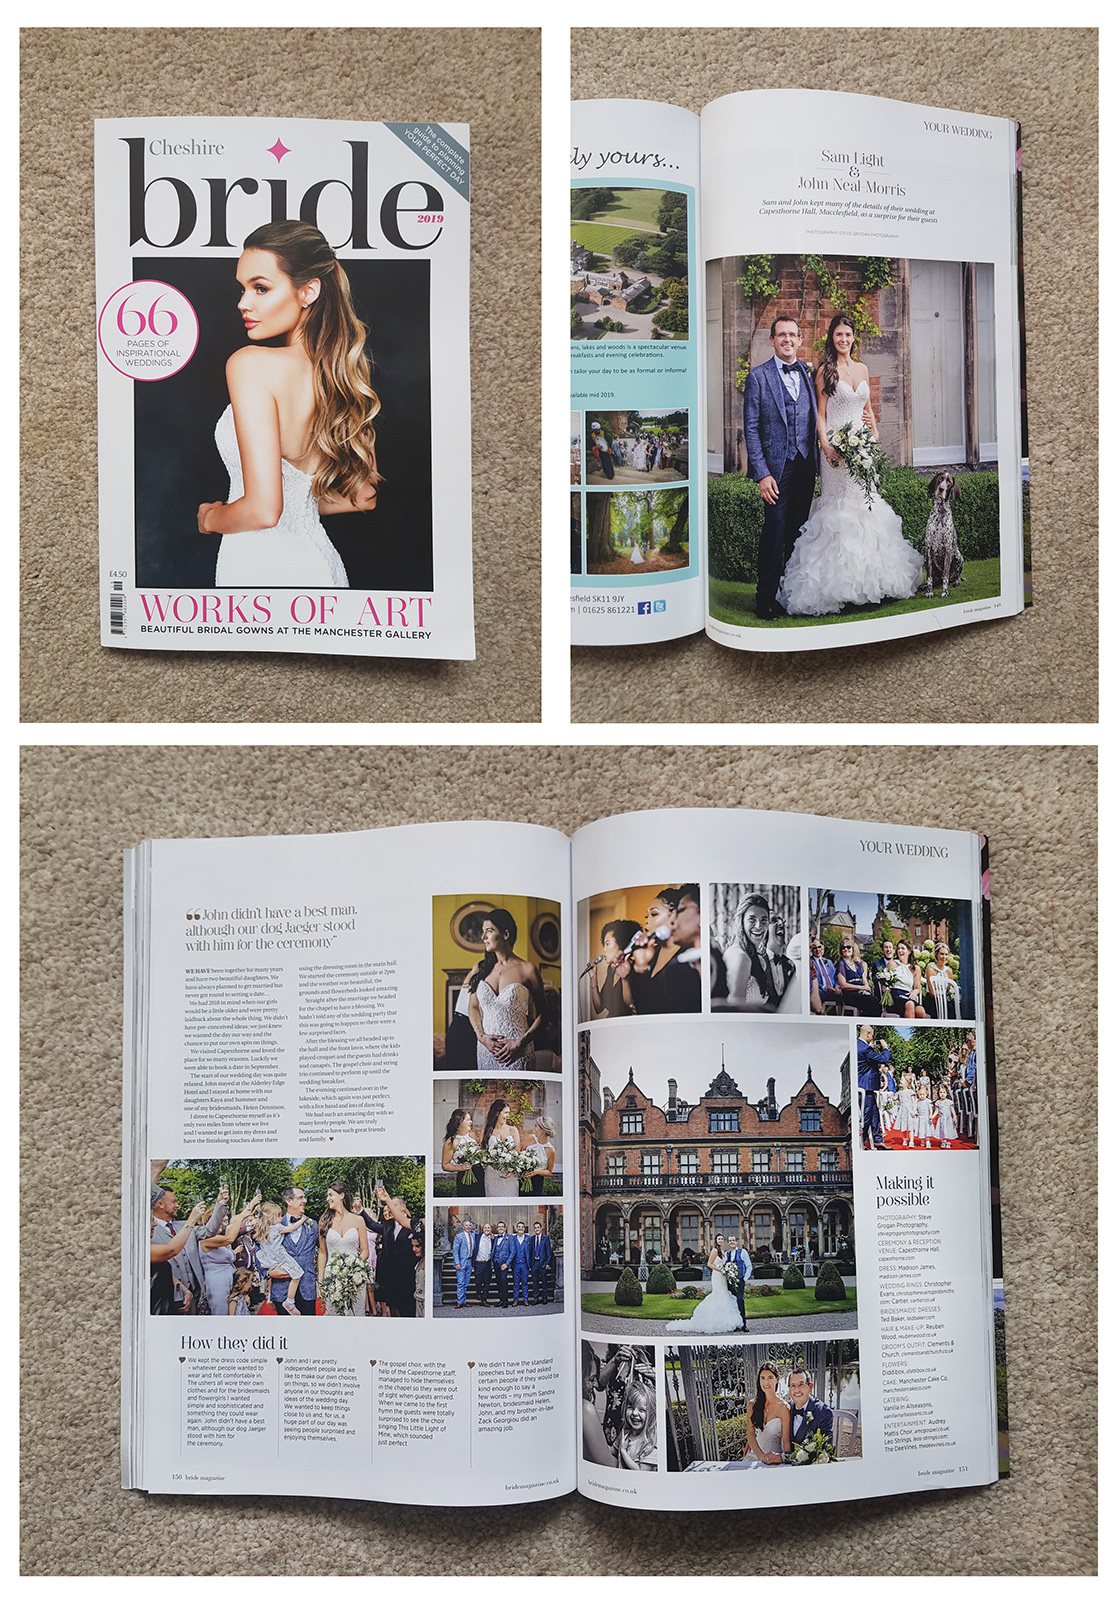 Cheshire Bride Magazine 2019